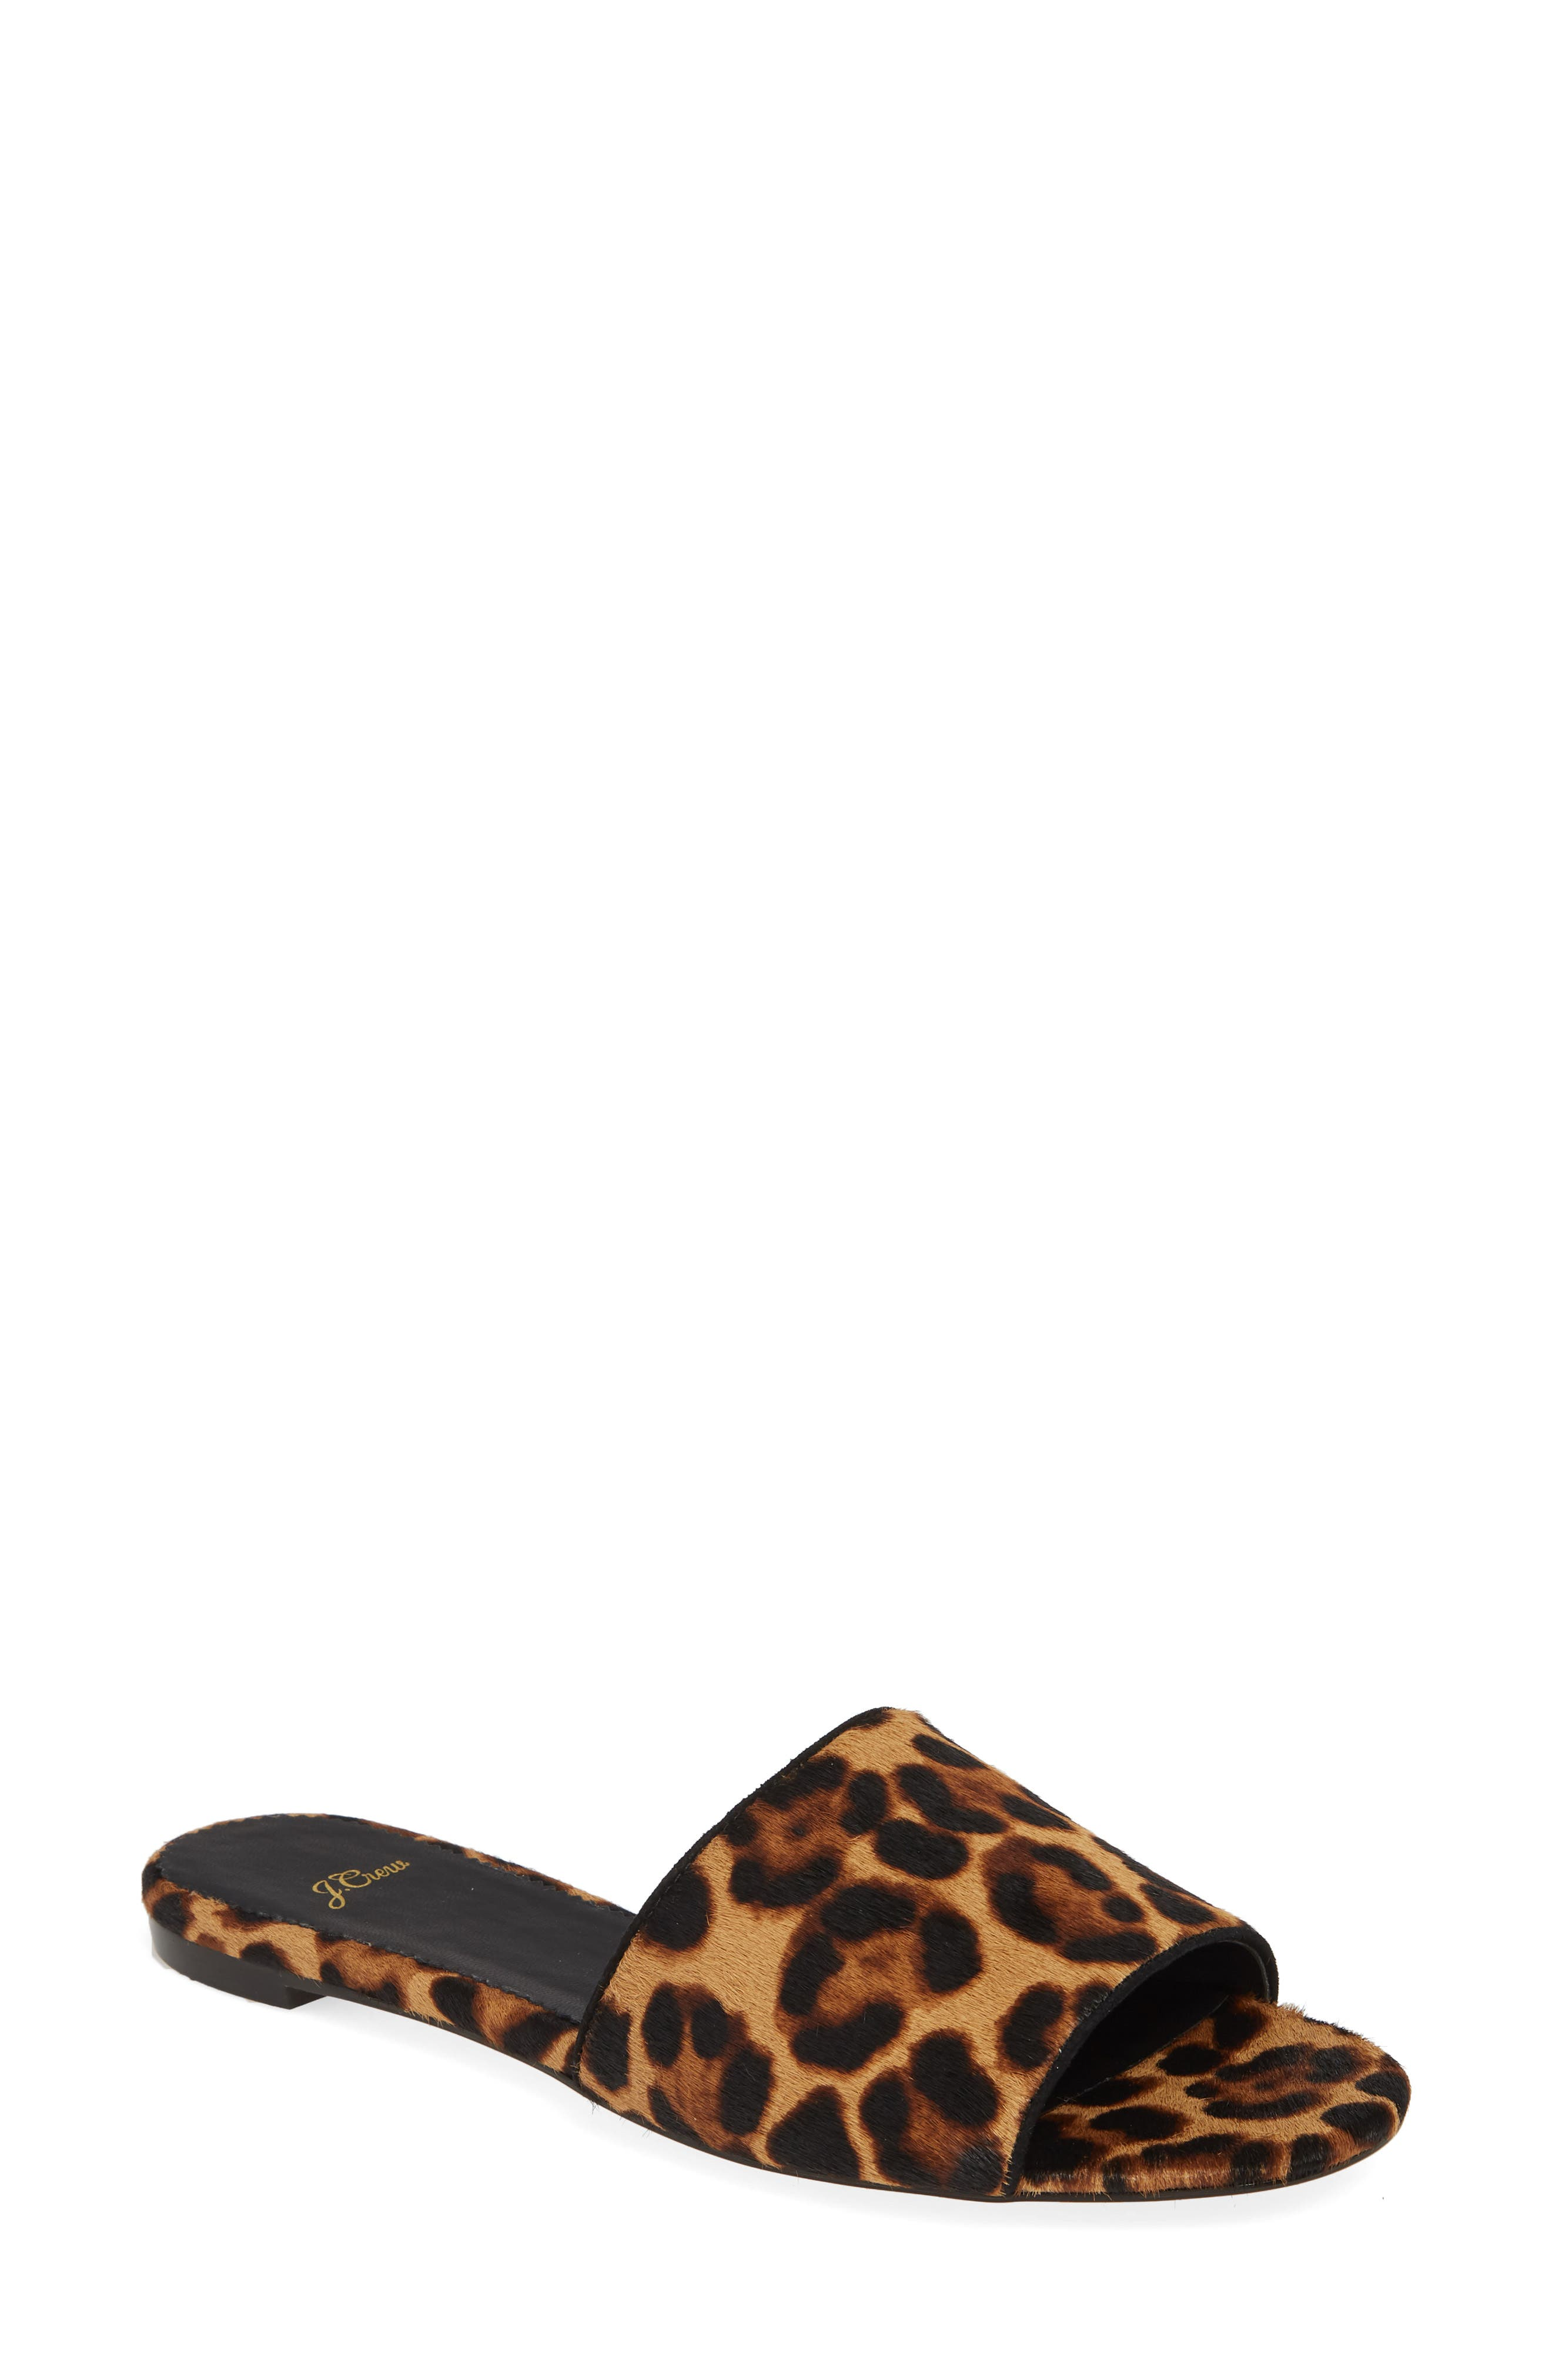 J.CREW, Cora Leopard Print Calf Hair Slide Sandal, Main thumbnail 1, color, LEOPARD PRINT CALF HAIR